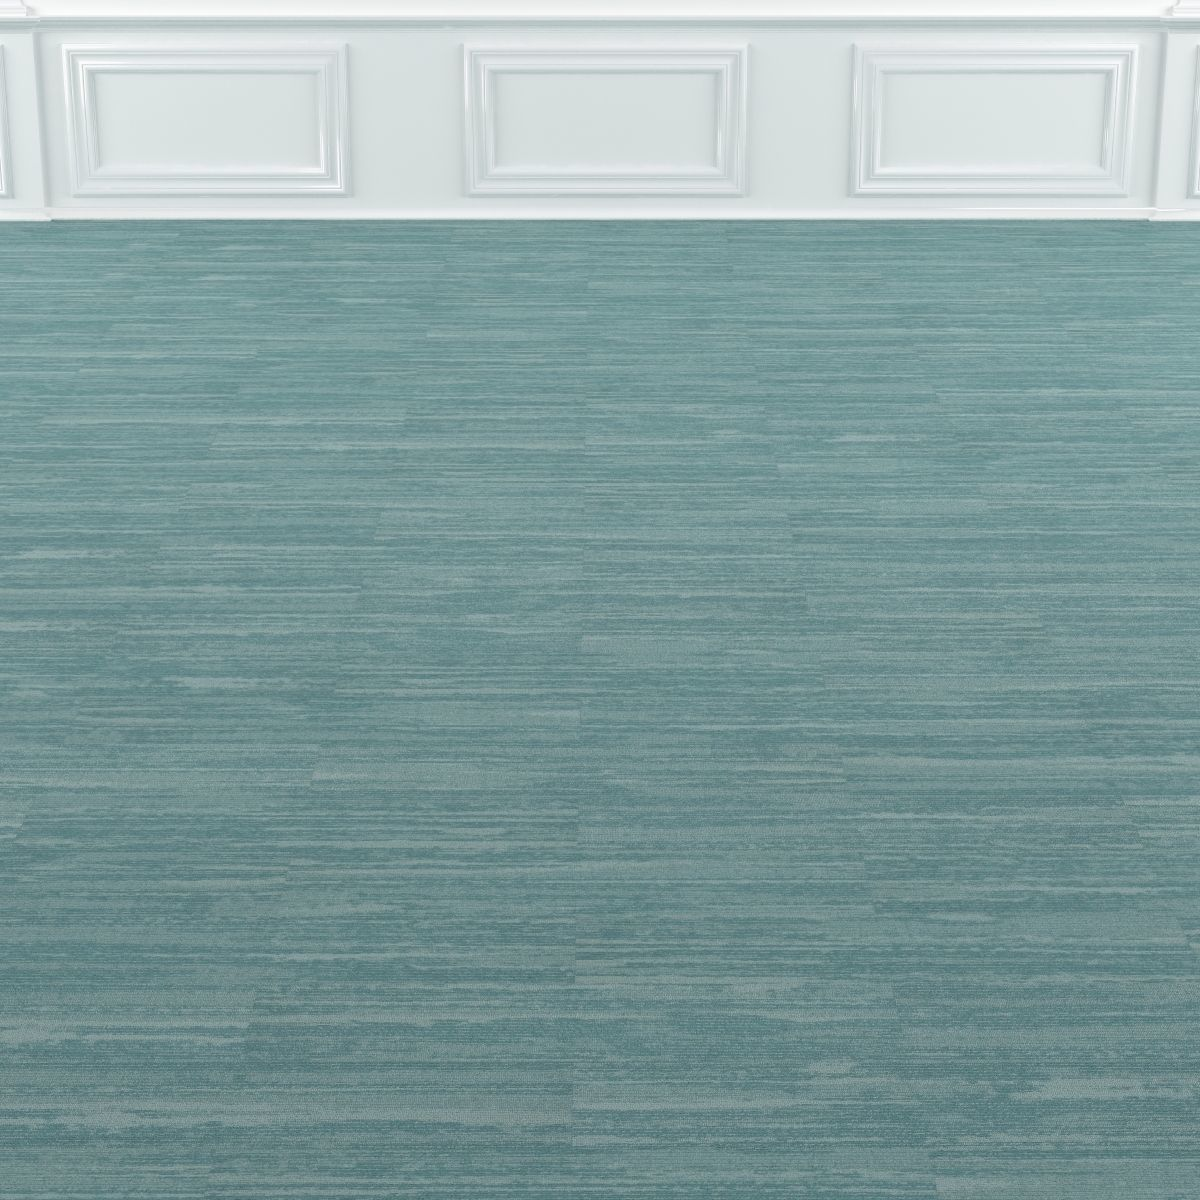 3D Wall to Wall Carpet Tile No 11 | CGTrader